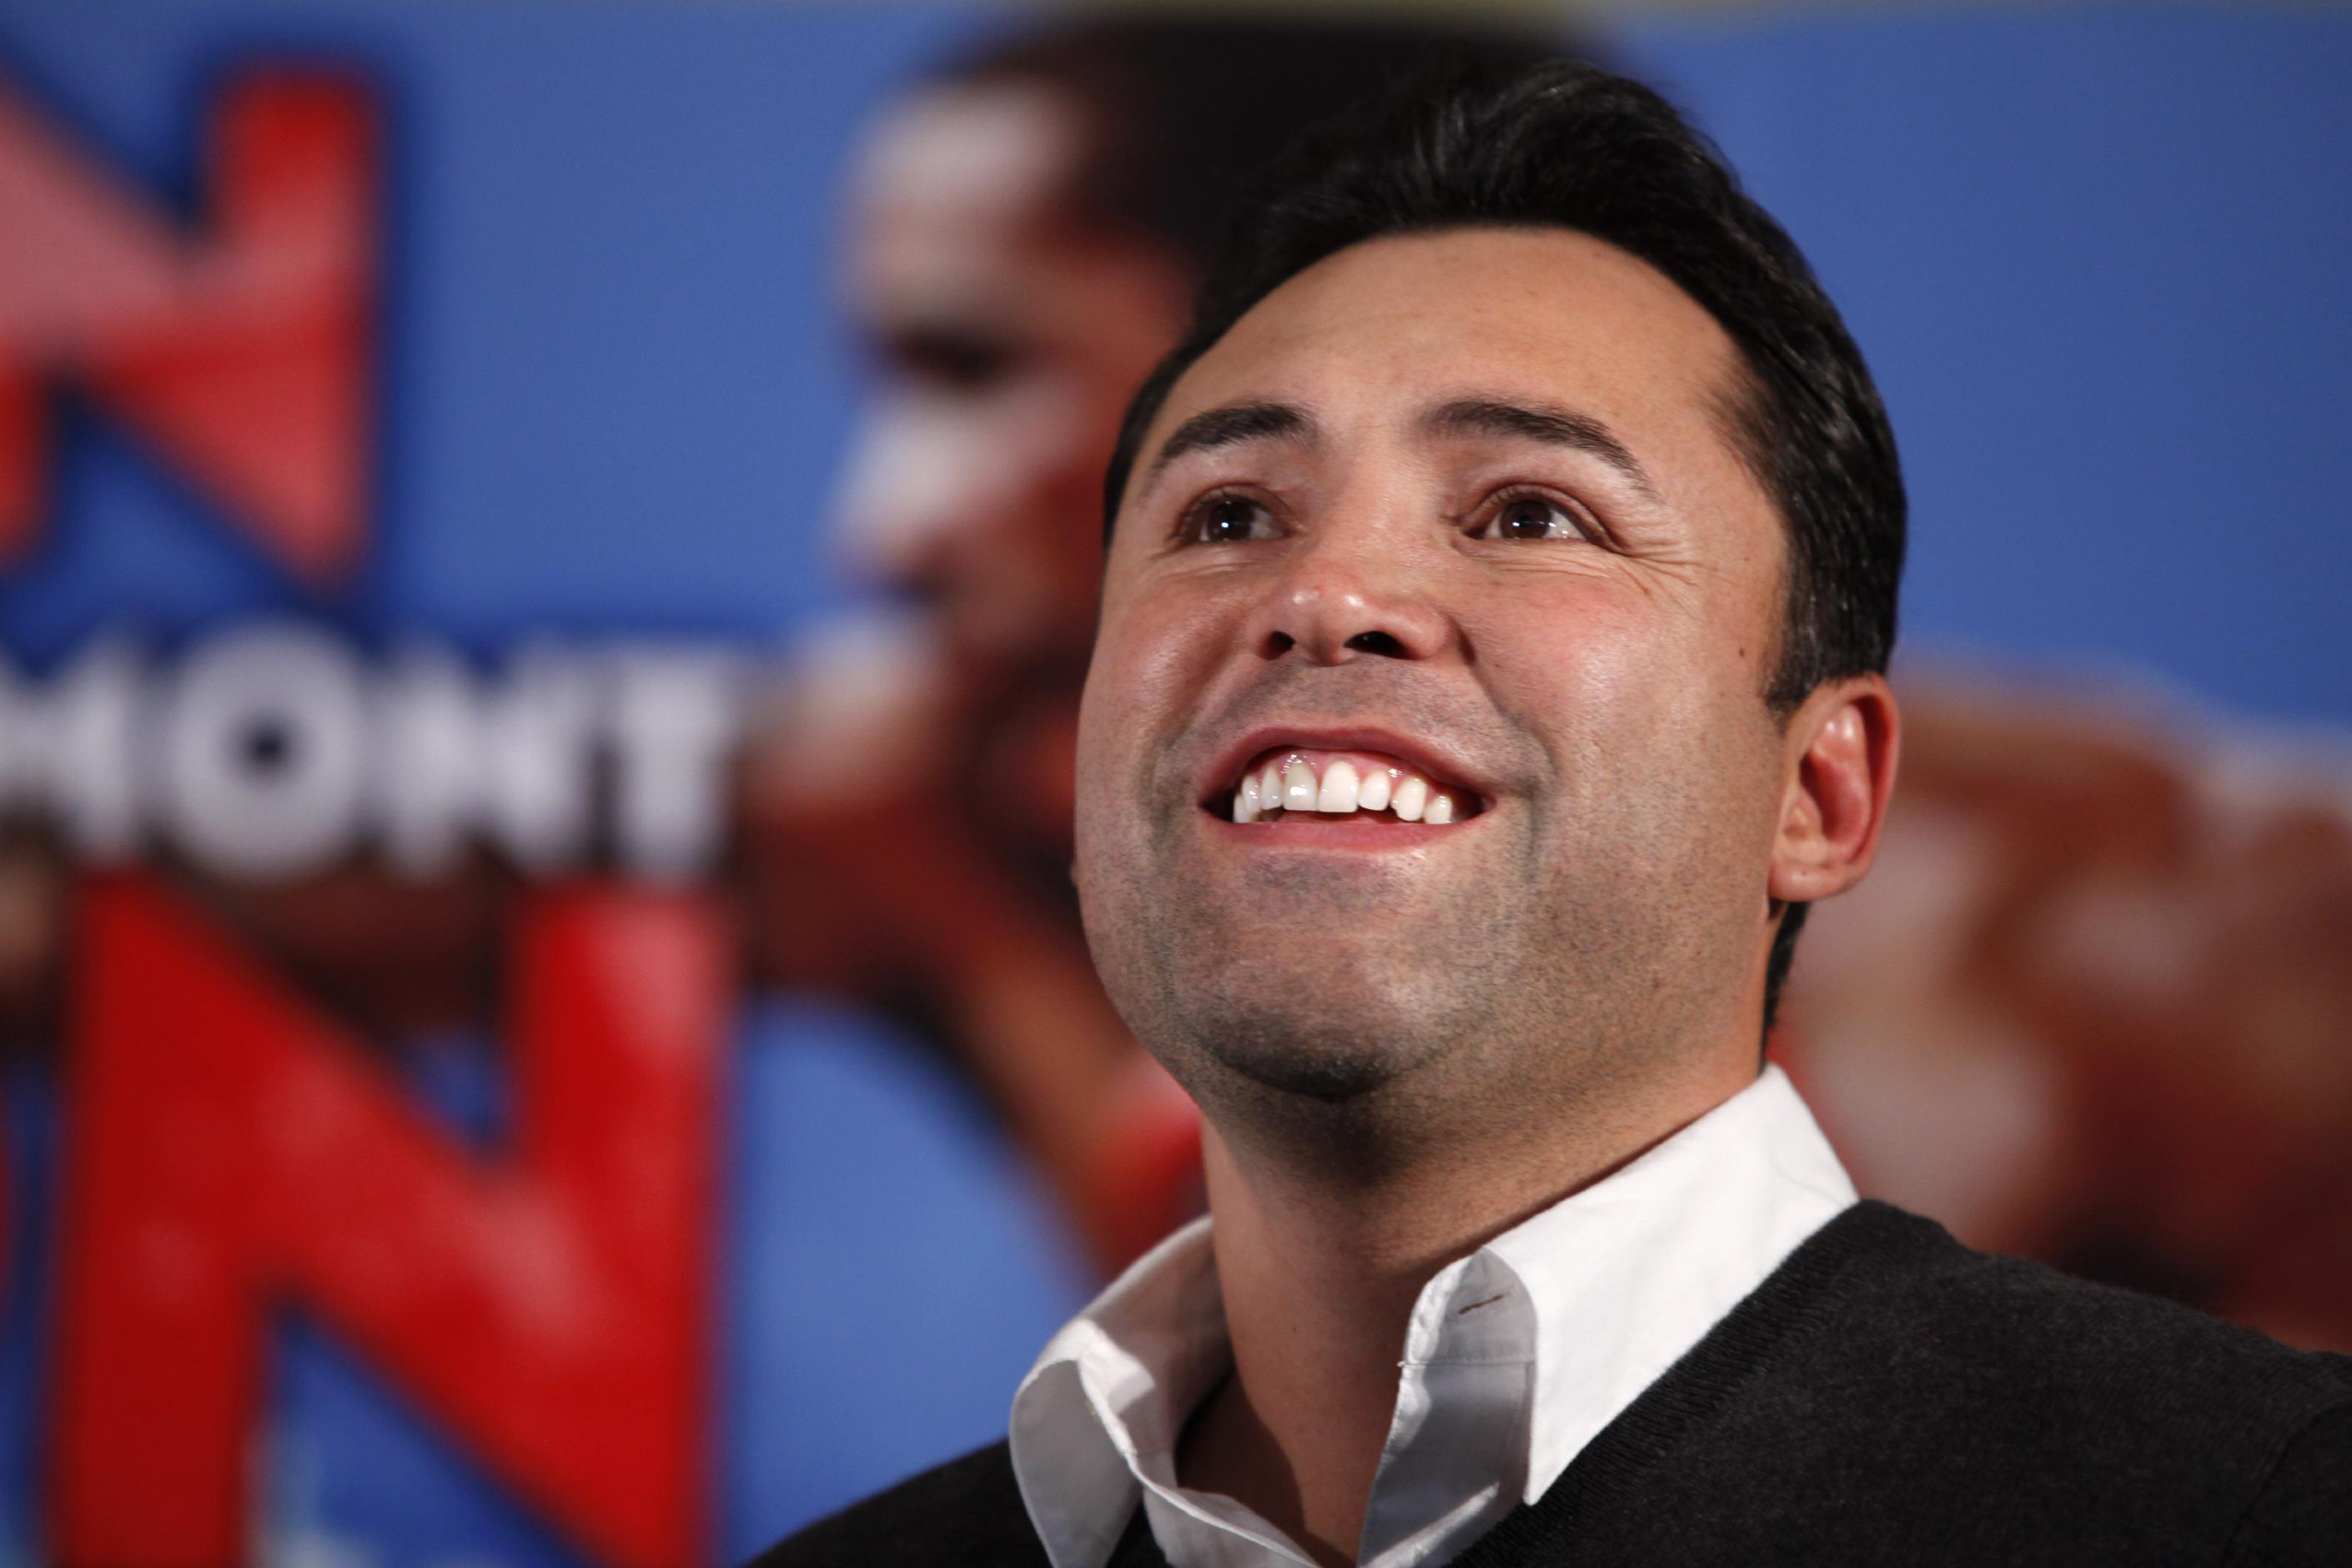 In this Dec. 9, 2011, file photo, boxing promoter Oscar De La Hoya watches during the the weigh-in for a fight between Amir Kahn and Lamont Peterson in Washington. The former boxer issued a statement Tuesday, Sept. 10, 2013, saying he voluntarily admitted himself to an unnamed facility as he continues to fight his substance abuse